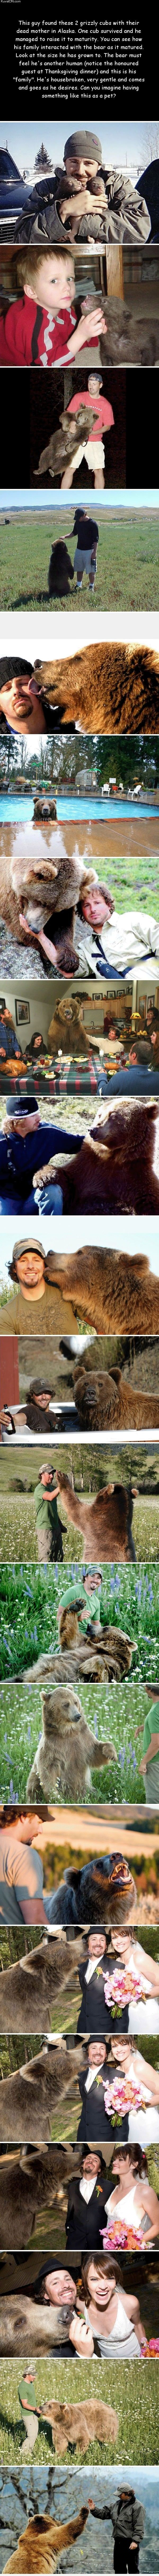 Hand raised grizzly bear.